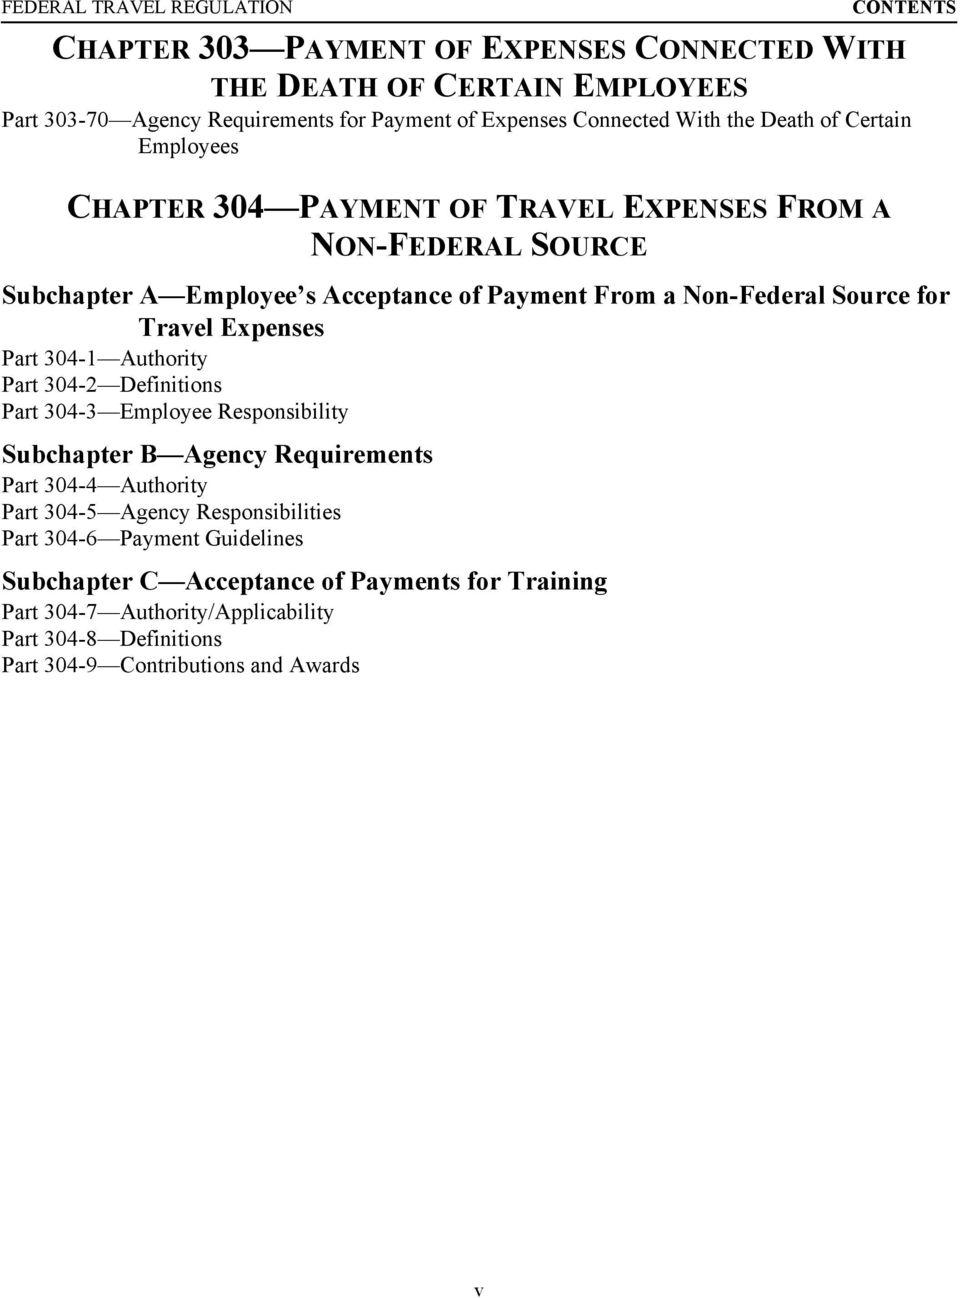 Travel Expenses Part 304-1 Authority Part 304-2 Definitions Part 304-3 Employee Responsibility Subchapter B Agency Requirements Part 304-4 Authority Part 304-5 Agency